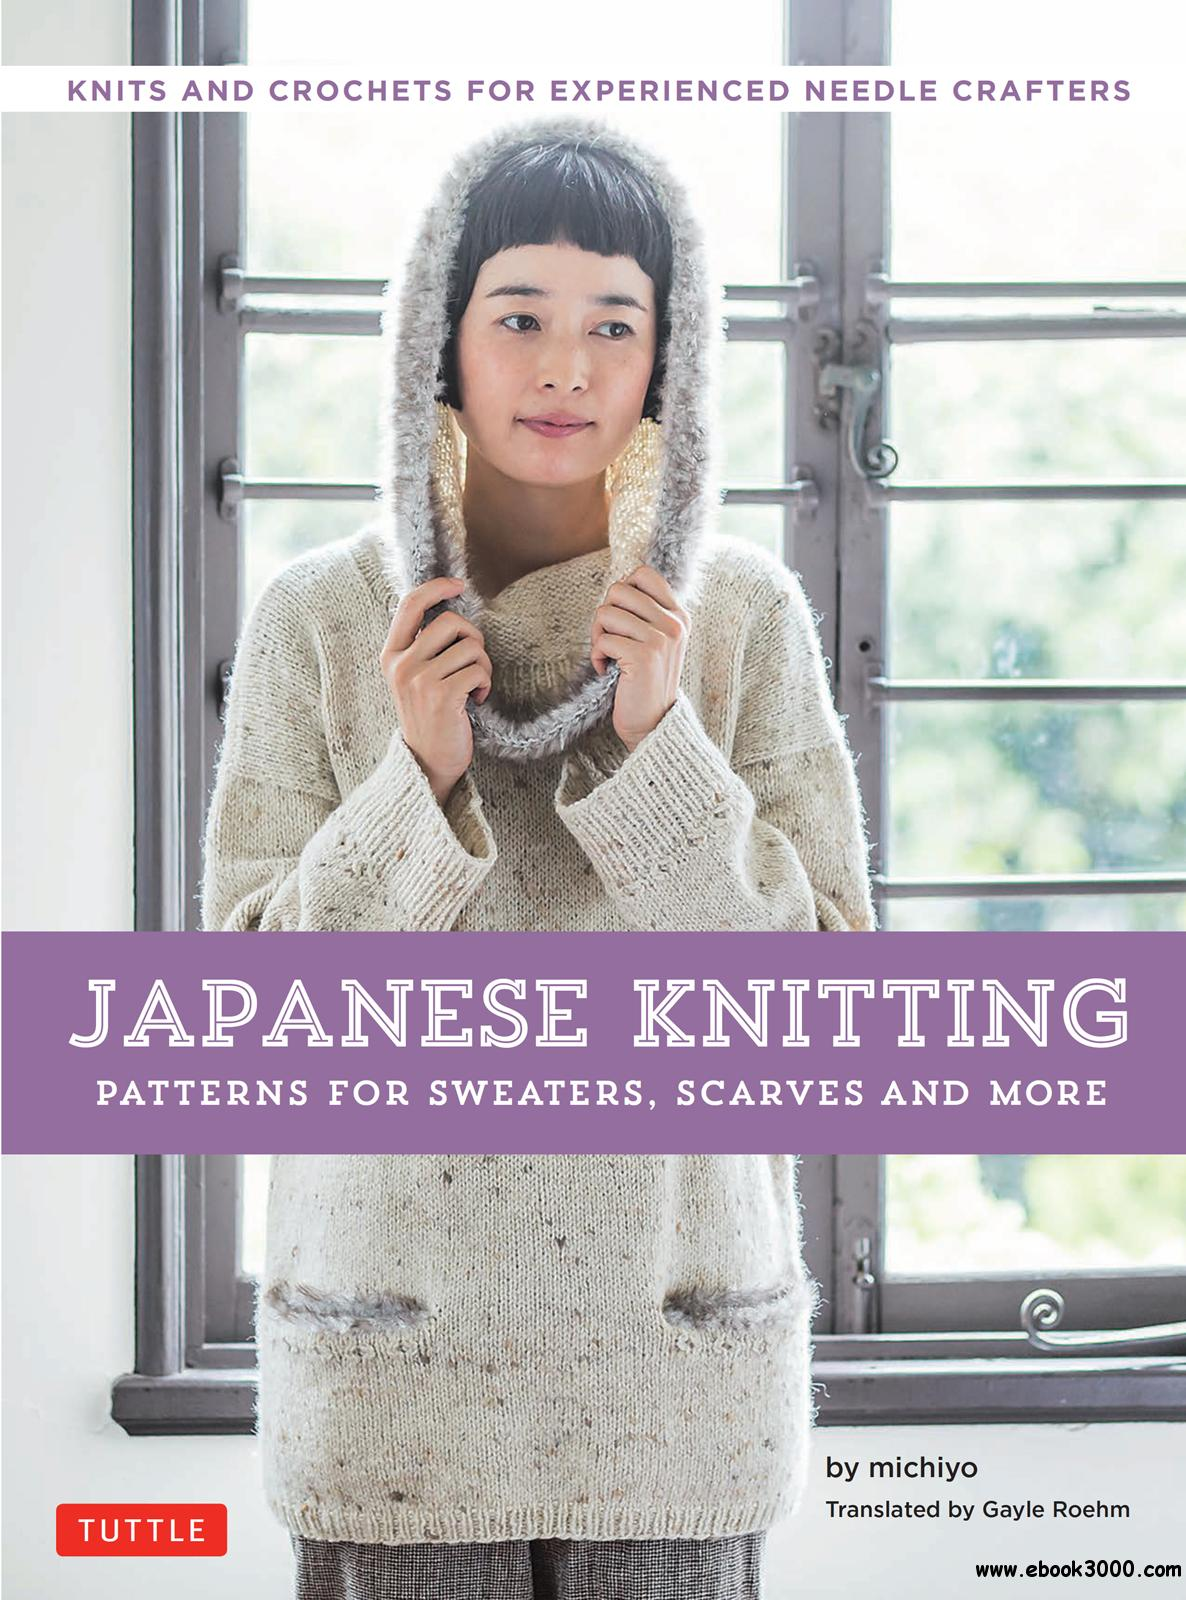 Japanese Knitting: Patterns for Sweaters, Scarves and More: Knits ...